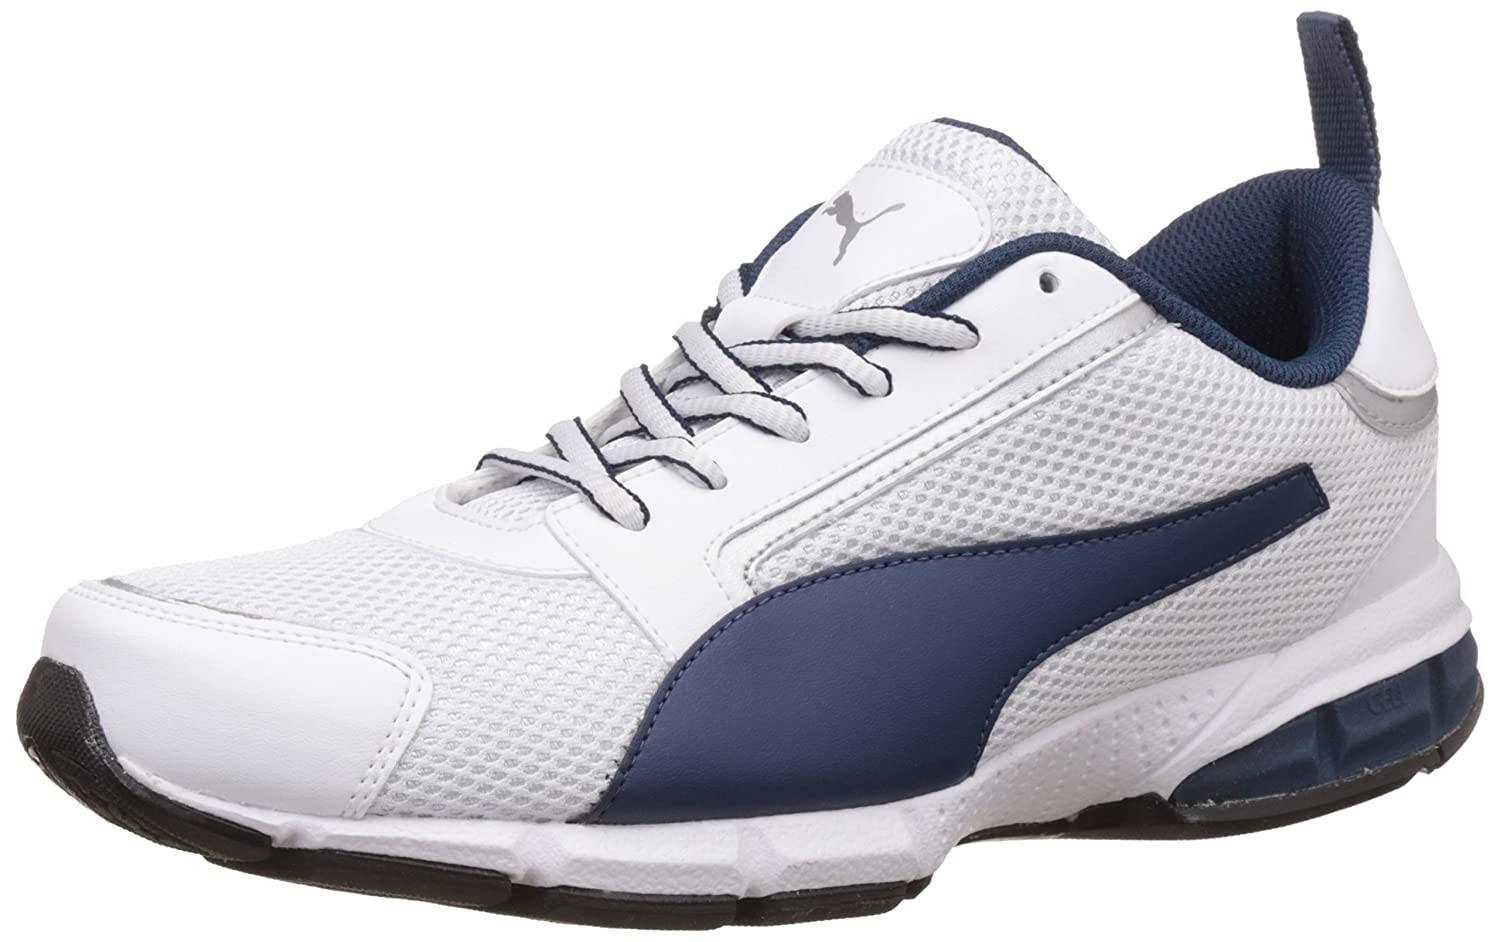 Puma Men's Storm Ind. Puma Menn Storm Ind. White Running Shoes Hvite Joggesko esnm8wN8f